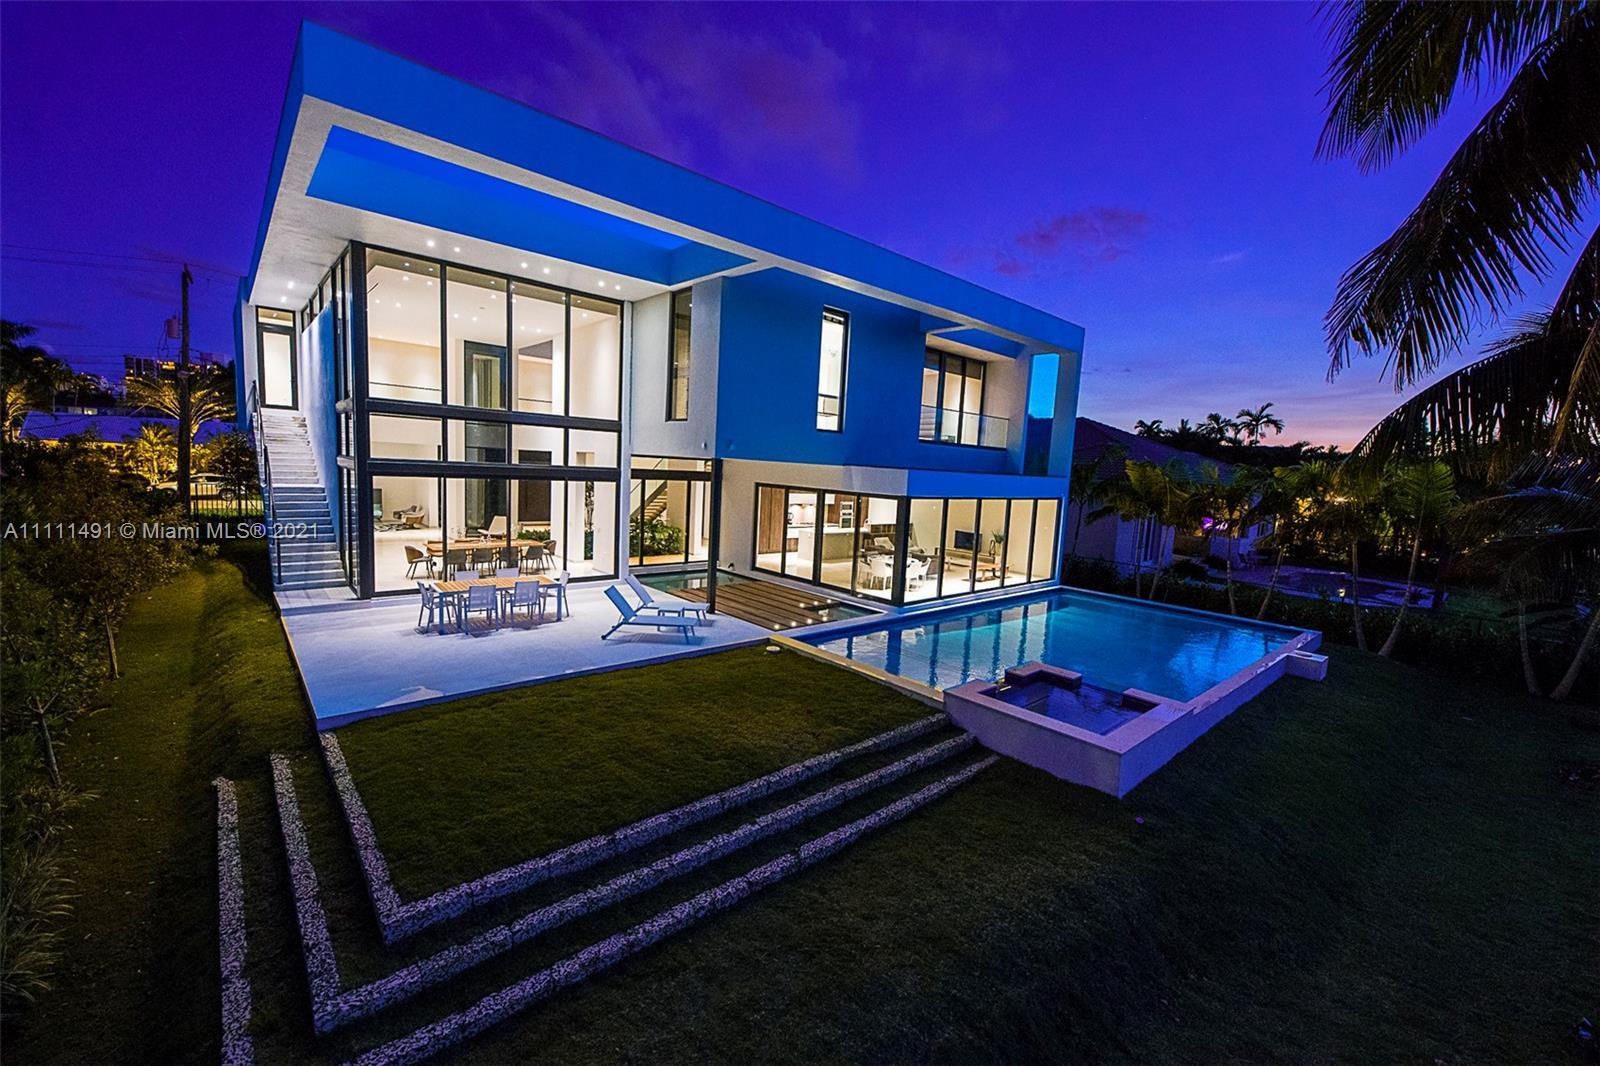 Located in the exclusive Golden Isles community, this architecturally stunning waterfront home displ